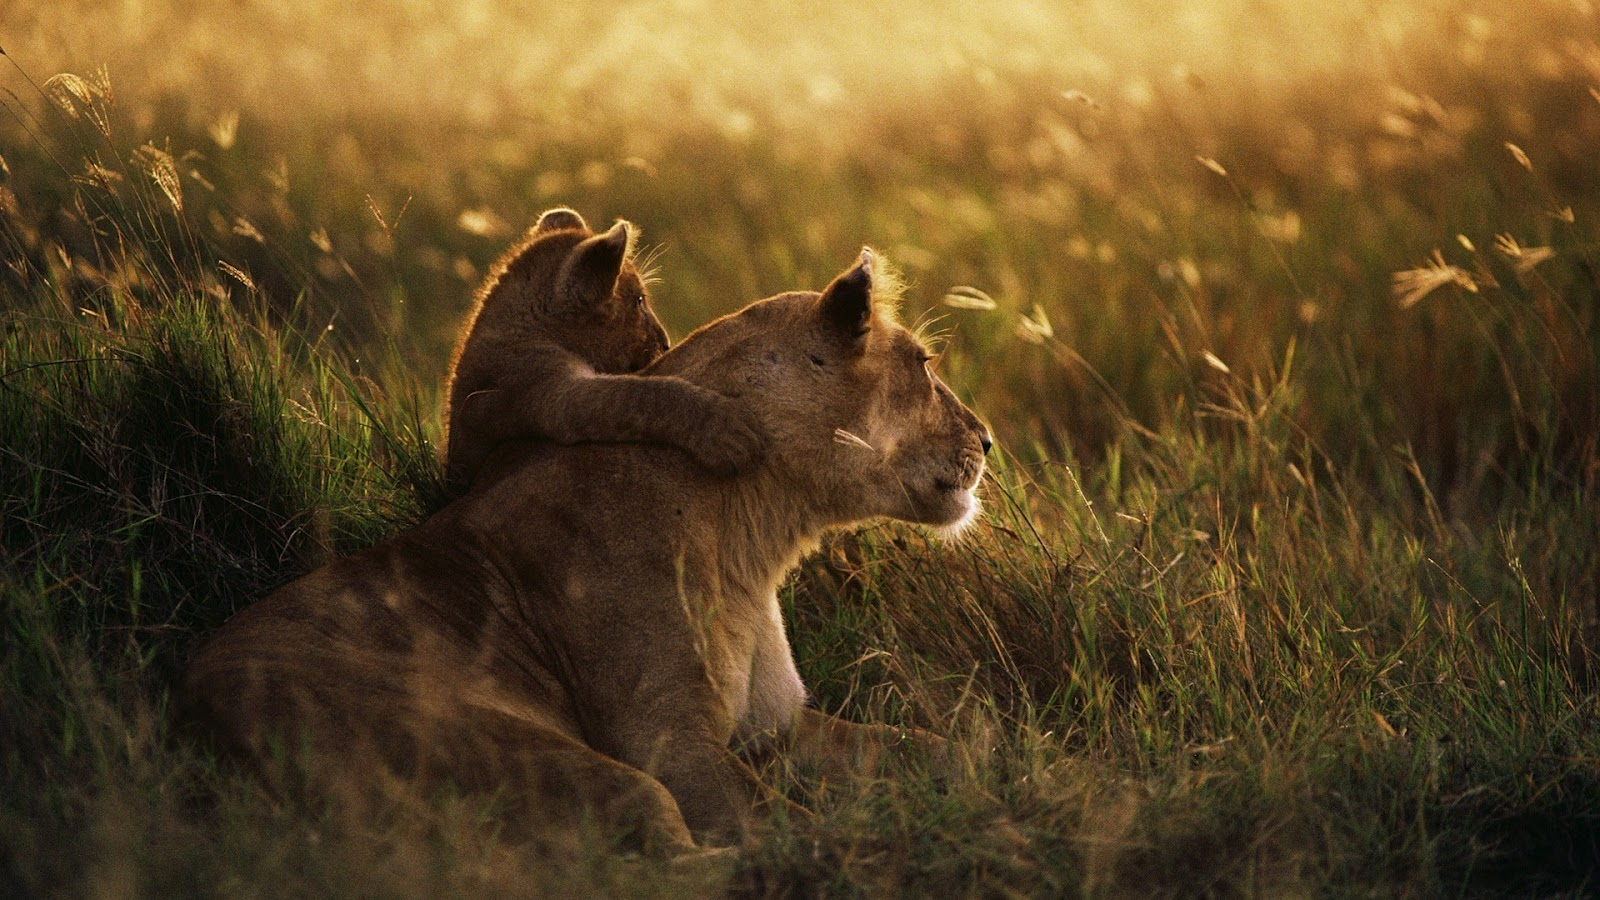 Baby Lion Hugs Mother Lion HD Wallpaper HD Nature Wallpapers 1600x900